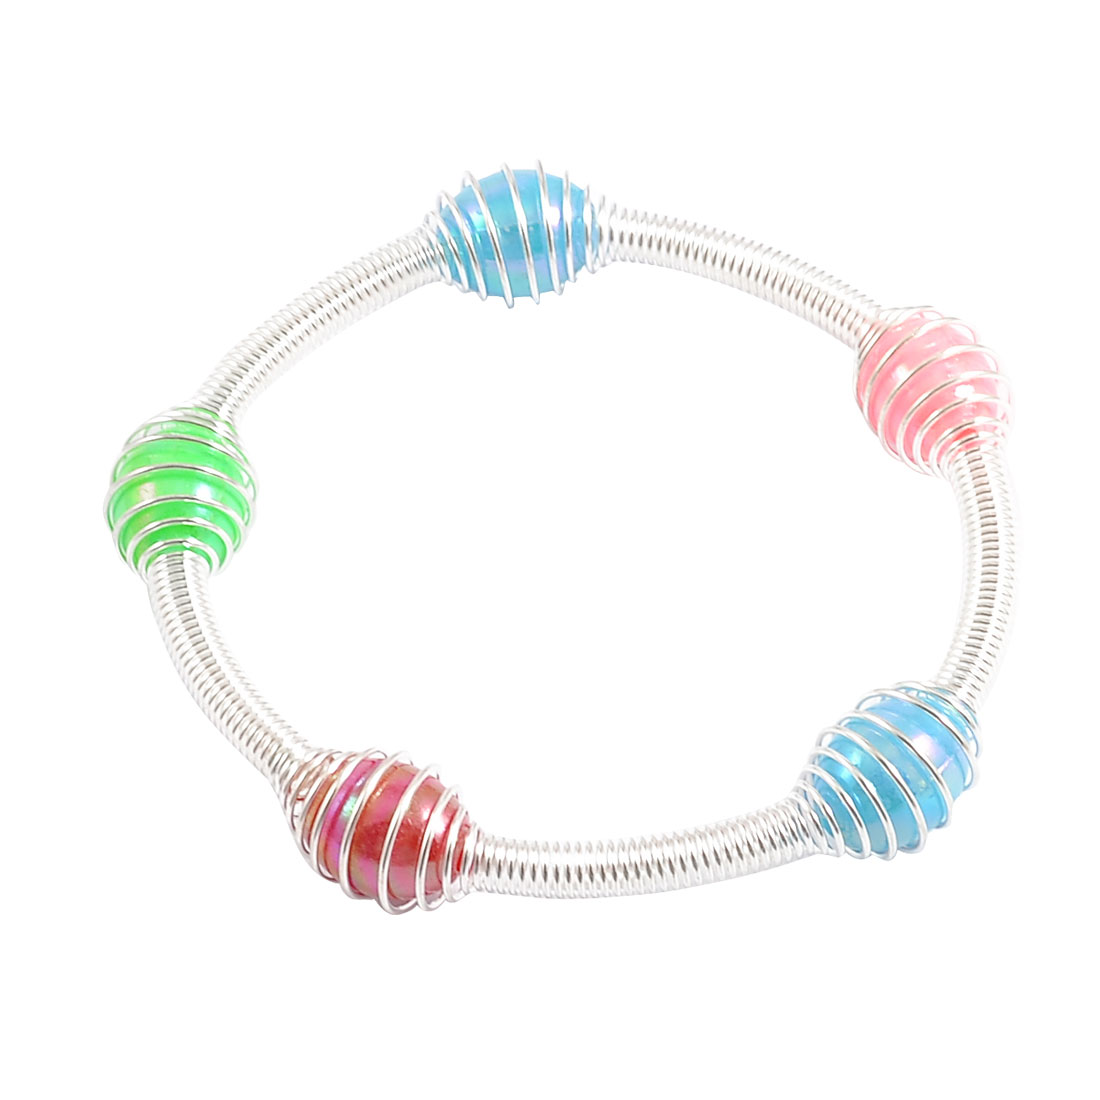 Ladies Oval Shaped Plastic Beads Detail Stretchy Bracelet Bangle